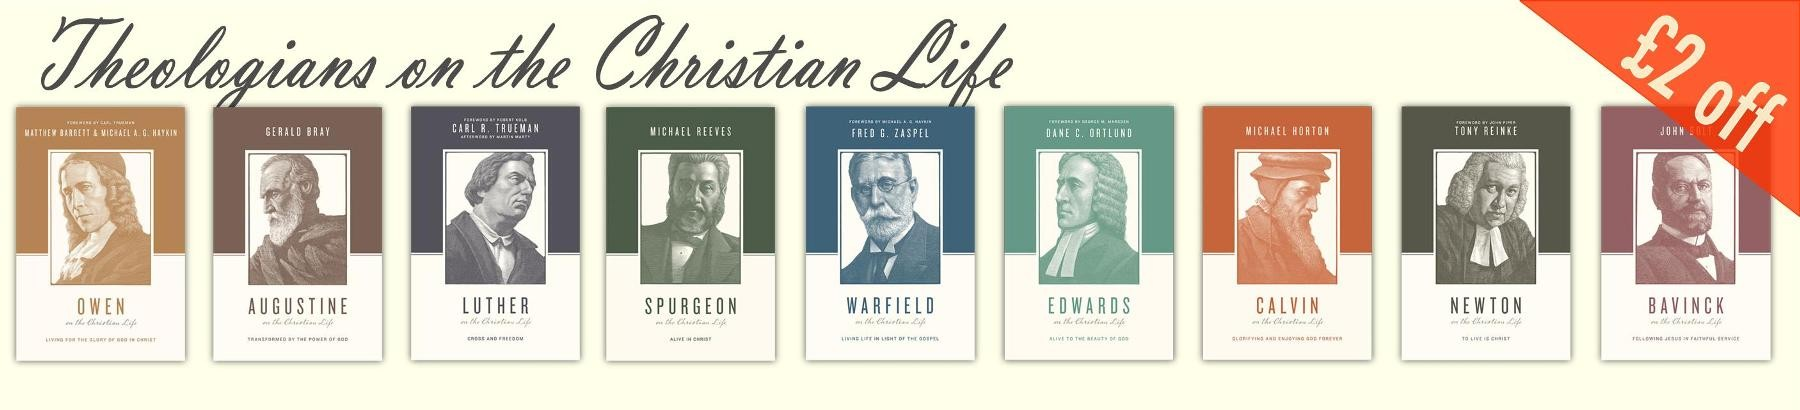 Theologians on the Christian Life - £2 off each book!